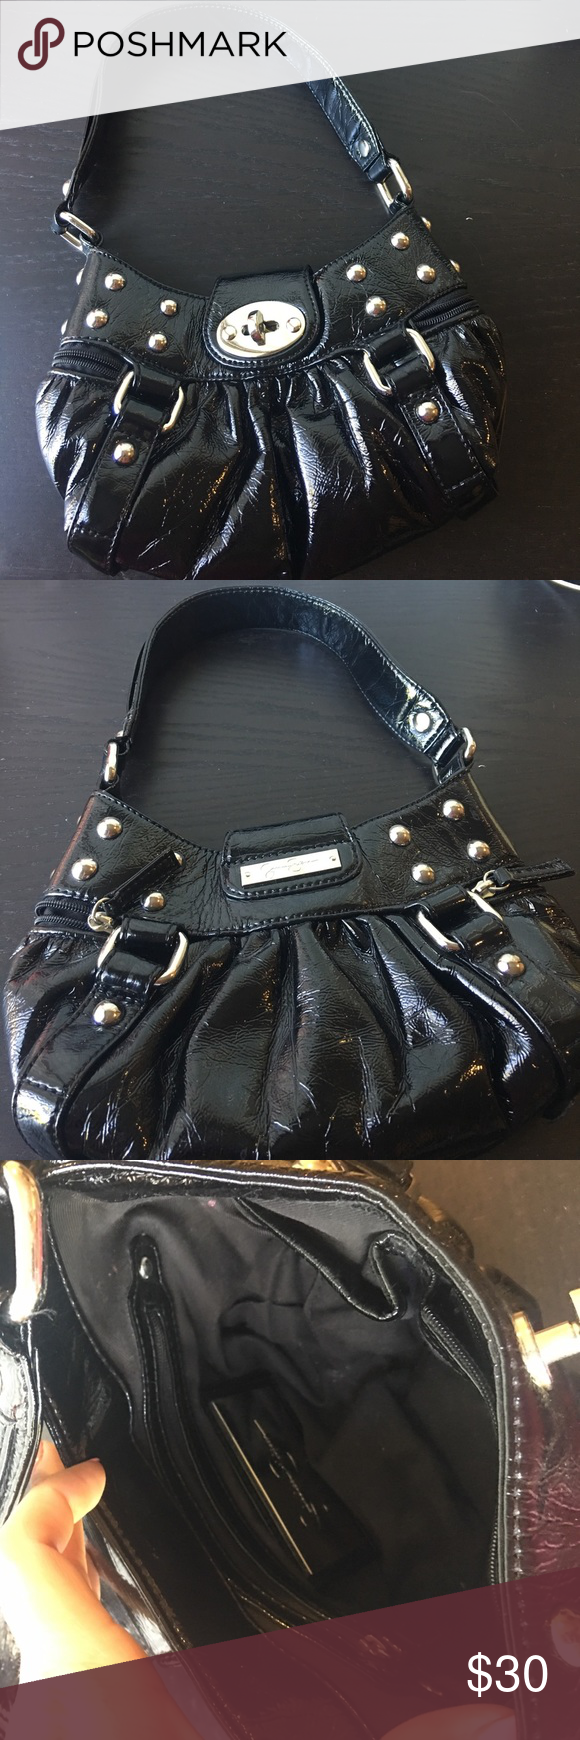 Black Jessica Simpson bag 😍 Black, shinny, Jessica Simpson bag with silver hardware. Has two small pockets with zippers on the sides, small zipper pocket on the inside, and two small pockets on the inside for holding cellphone or makeup. Great bag for a night on the town! 😍 Jessica Simpson Bags Shoulder Bags